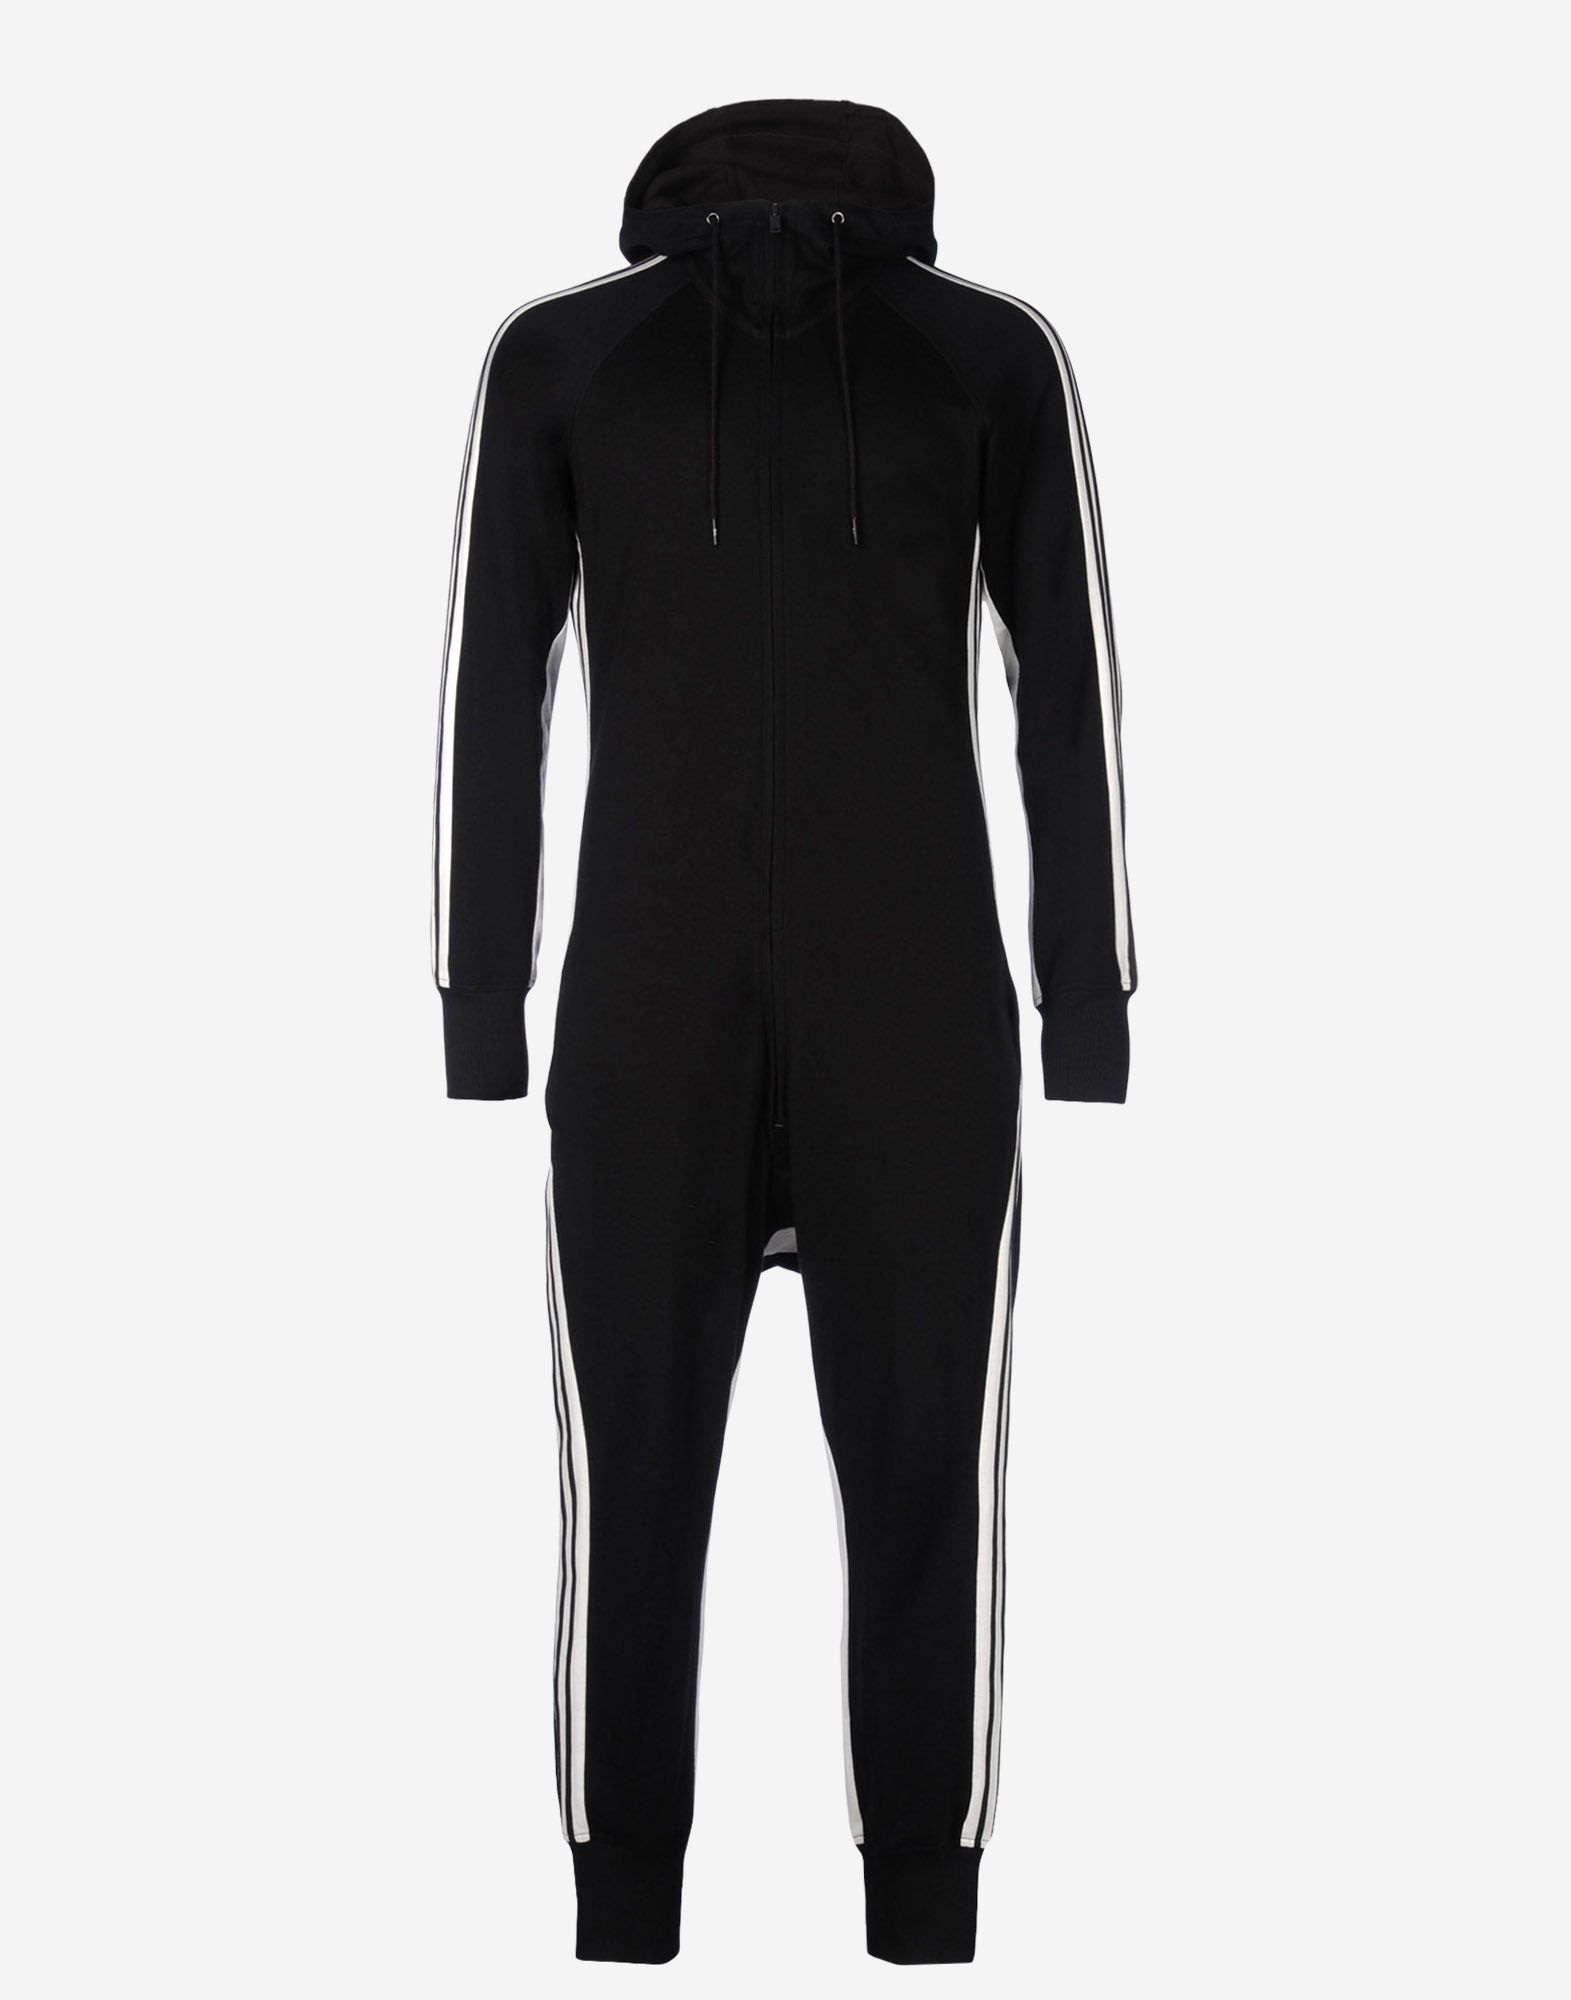 Brilliant Amazing Deal On Adidas Women Stage Suit - Jumpsuits